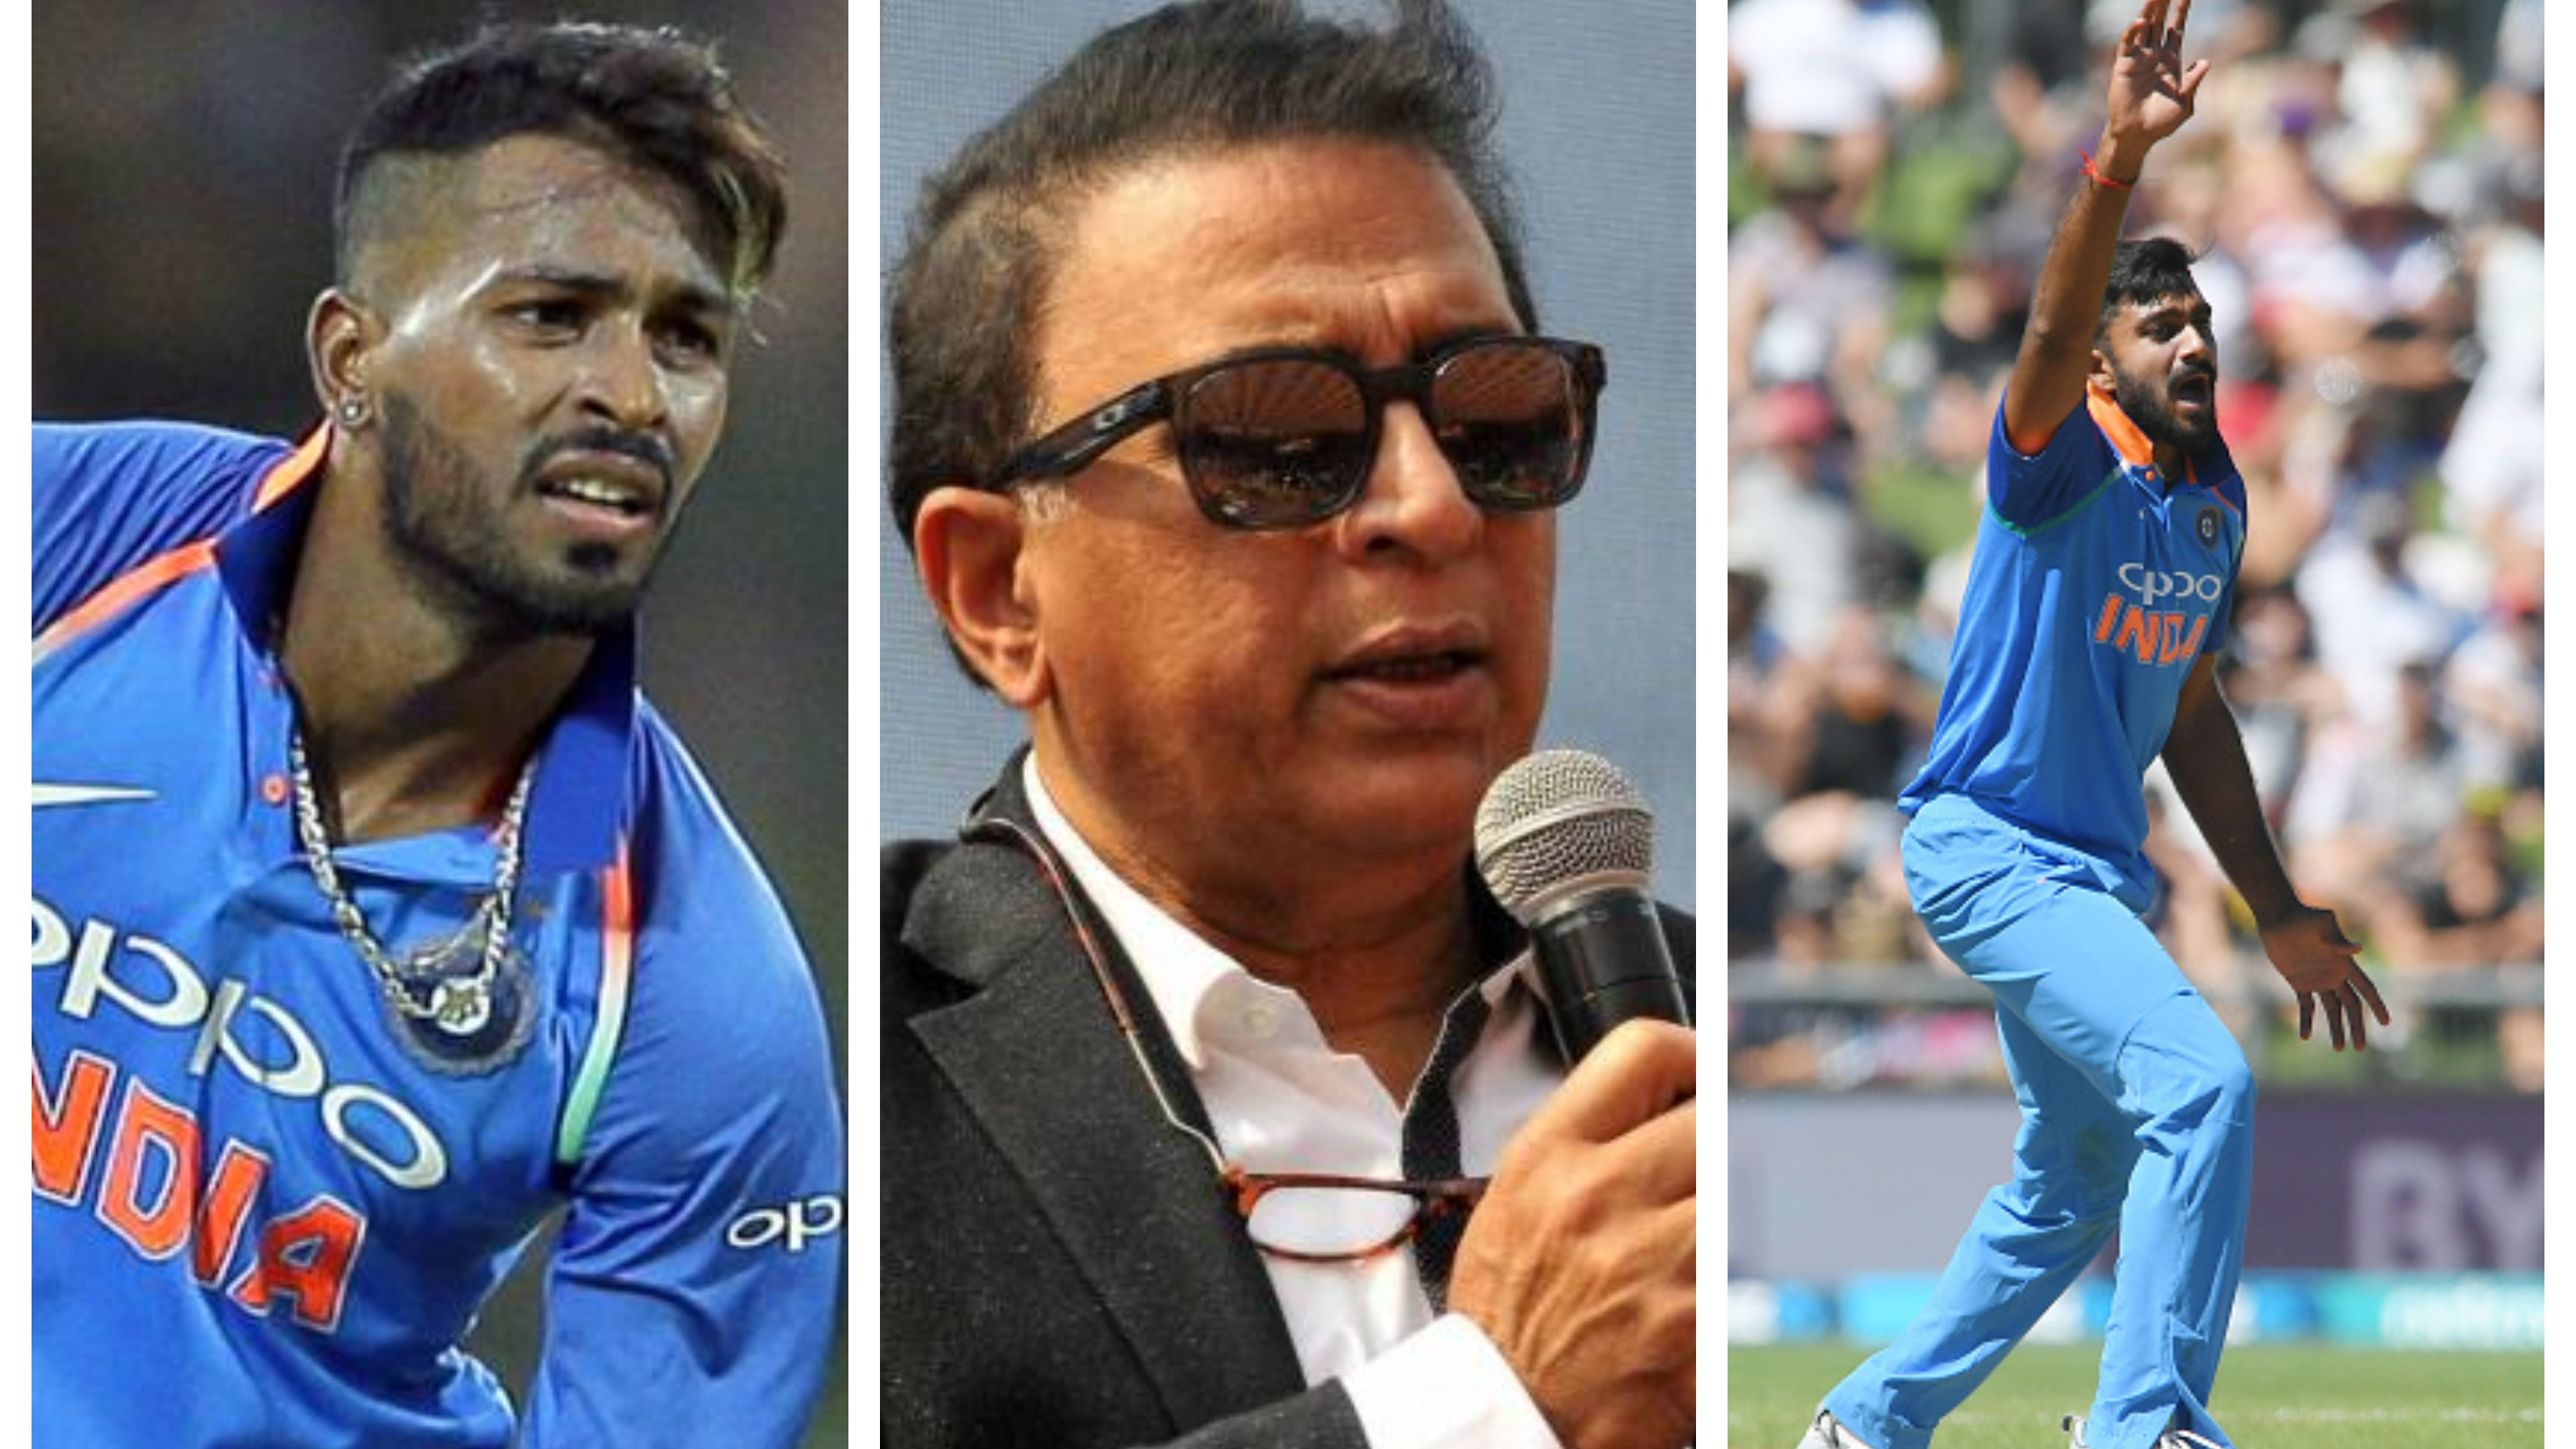 NZ v IND 2019: Sunil Gavaskar feels bad for Vijay Shankar after Hardik Pandya's return to India squad